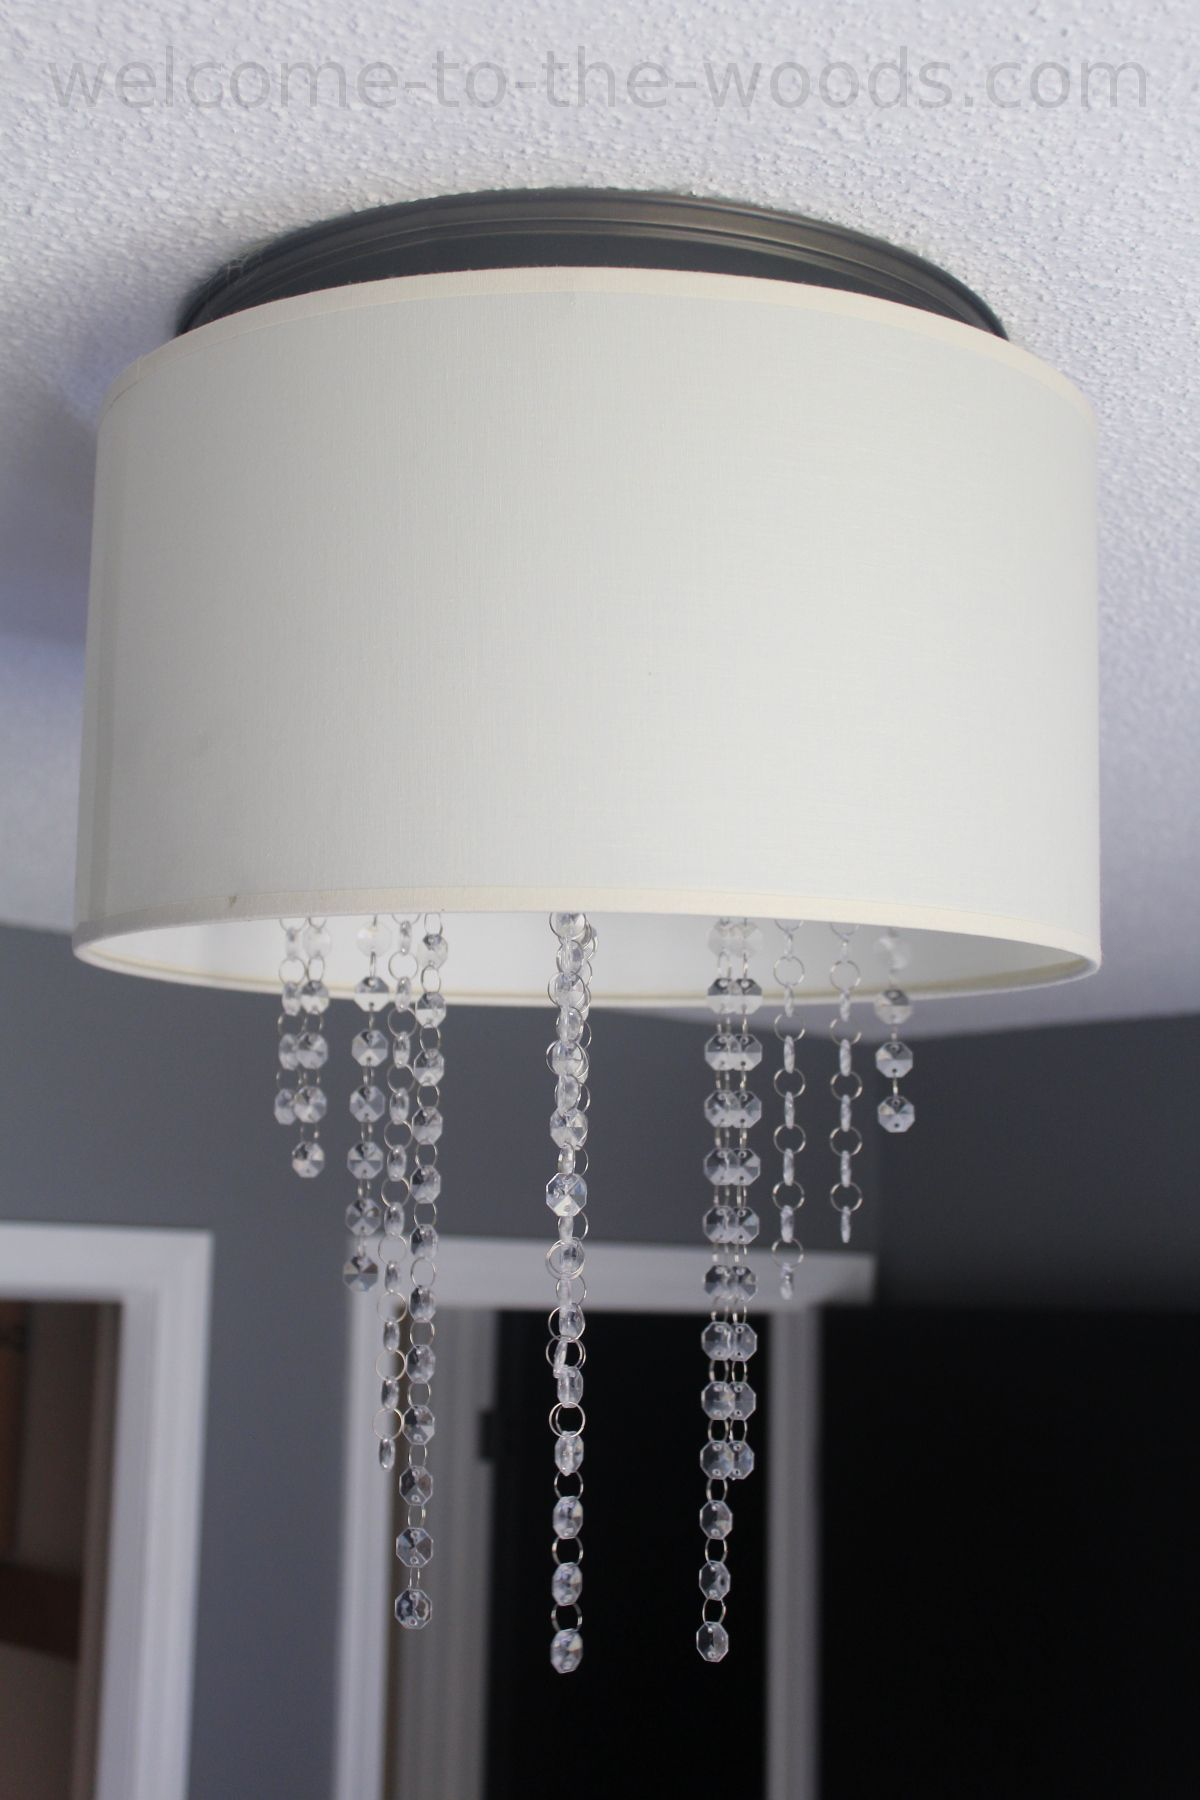 Diy drum chandelier tutorial office makeover orc drum chandelier diy drum chandelier tutorial office makeover orc aloadofball Image collections